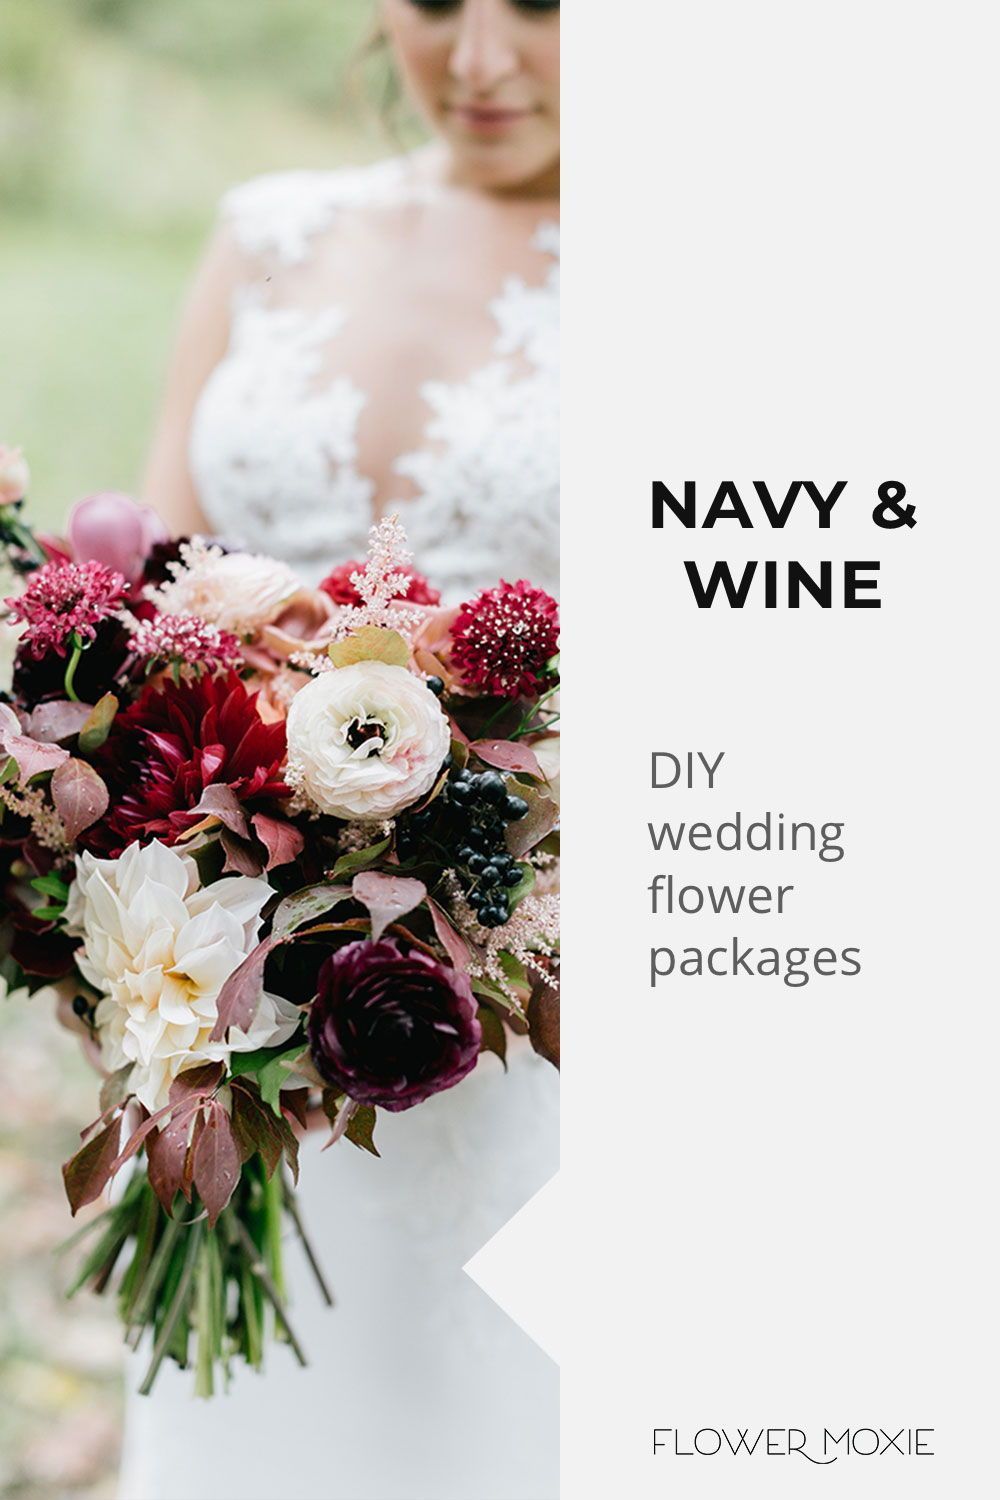 Get Inspired By Our Wedding Flower Packages Mix Match Flowers To Achieve The Look You Wa Bulk Wedding Flowers Diy Bridesmaid Bouquet Wedding Flower Packages